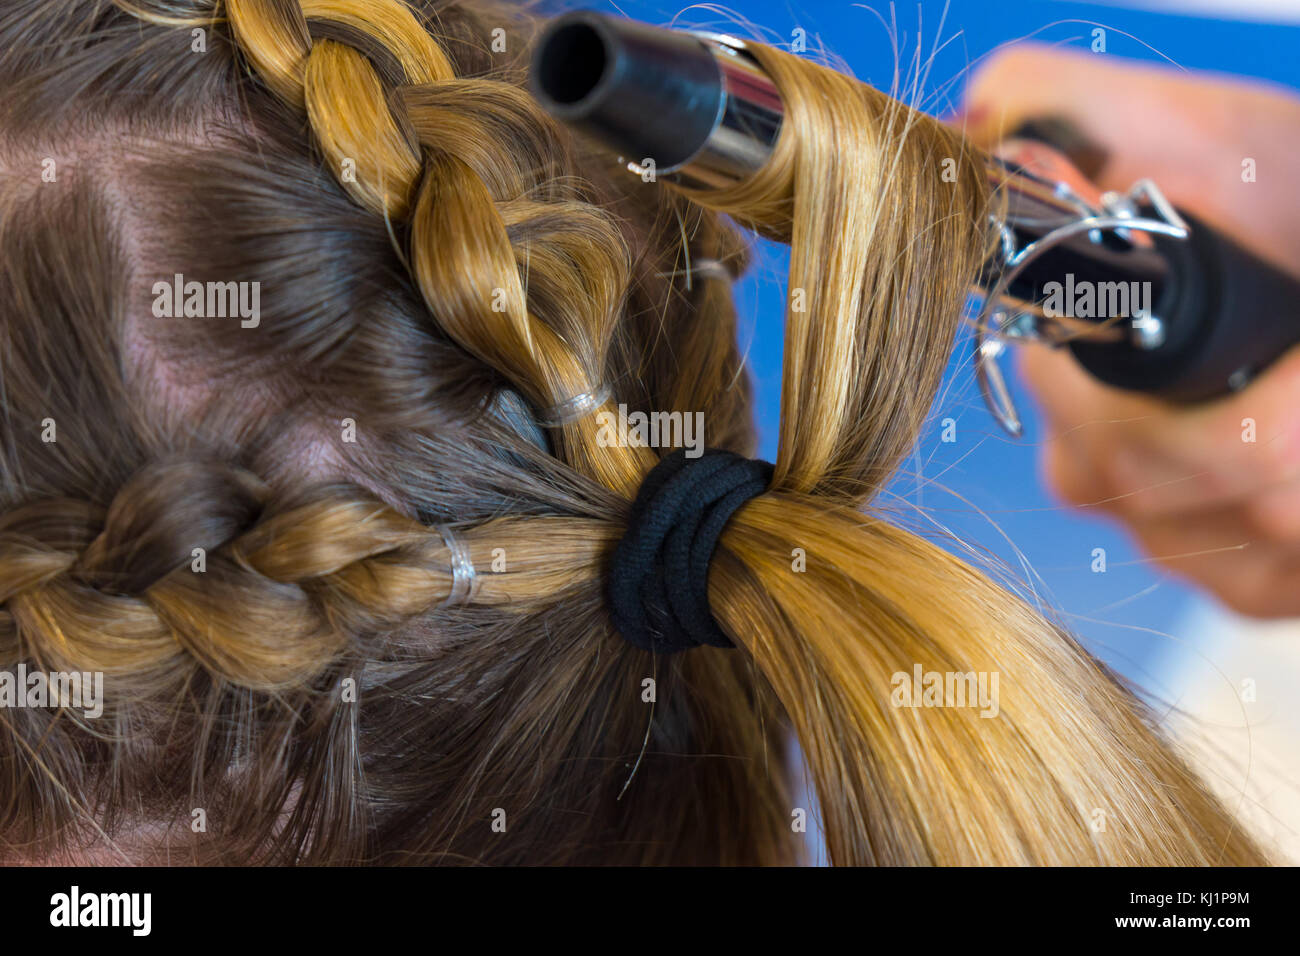 Stylist make curls hair - Stock Image